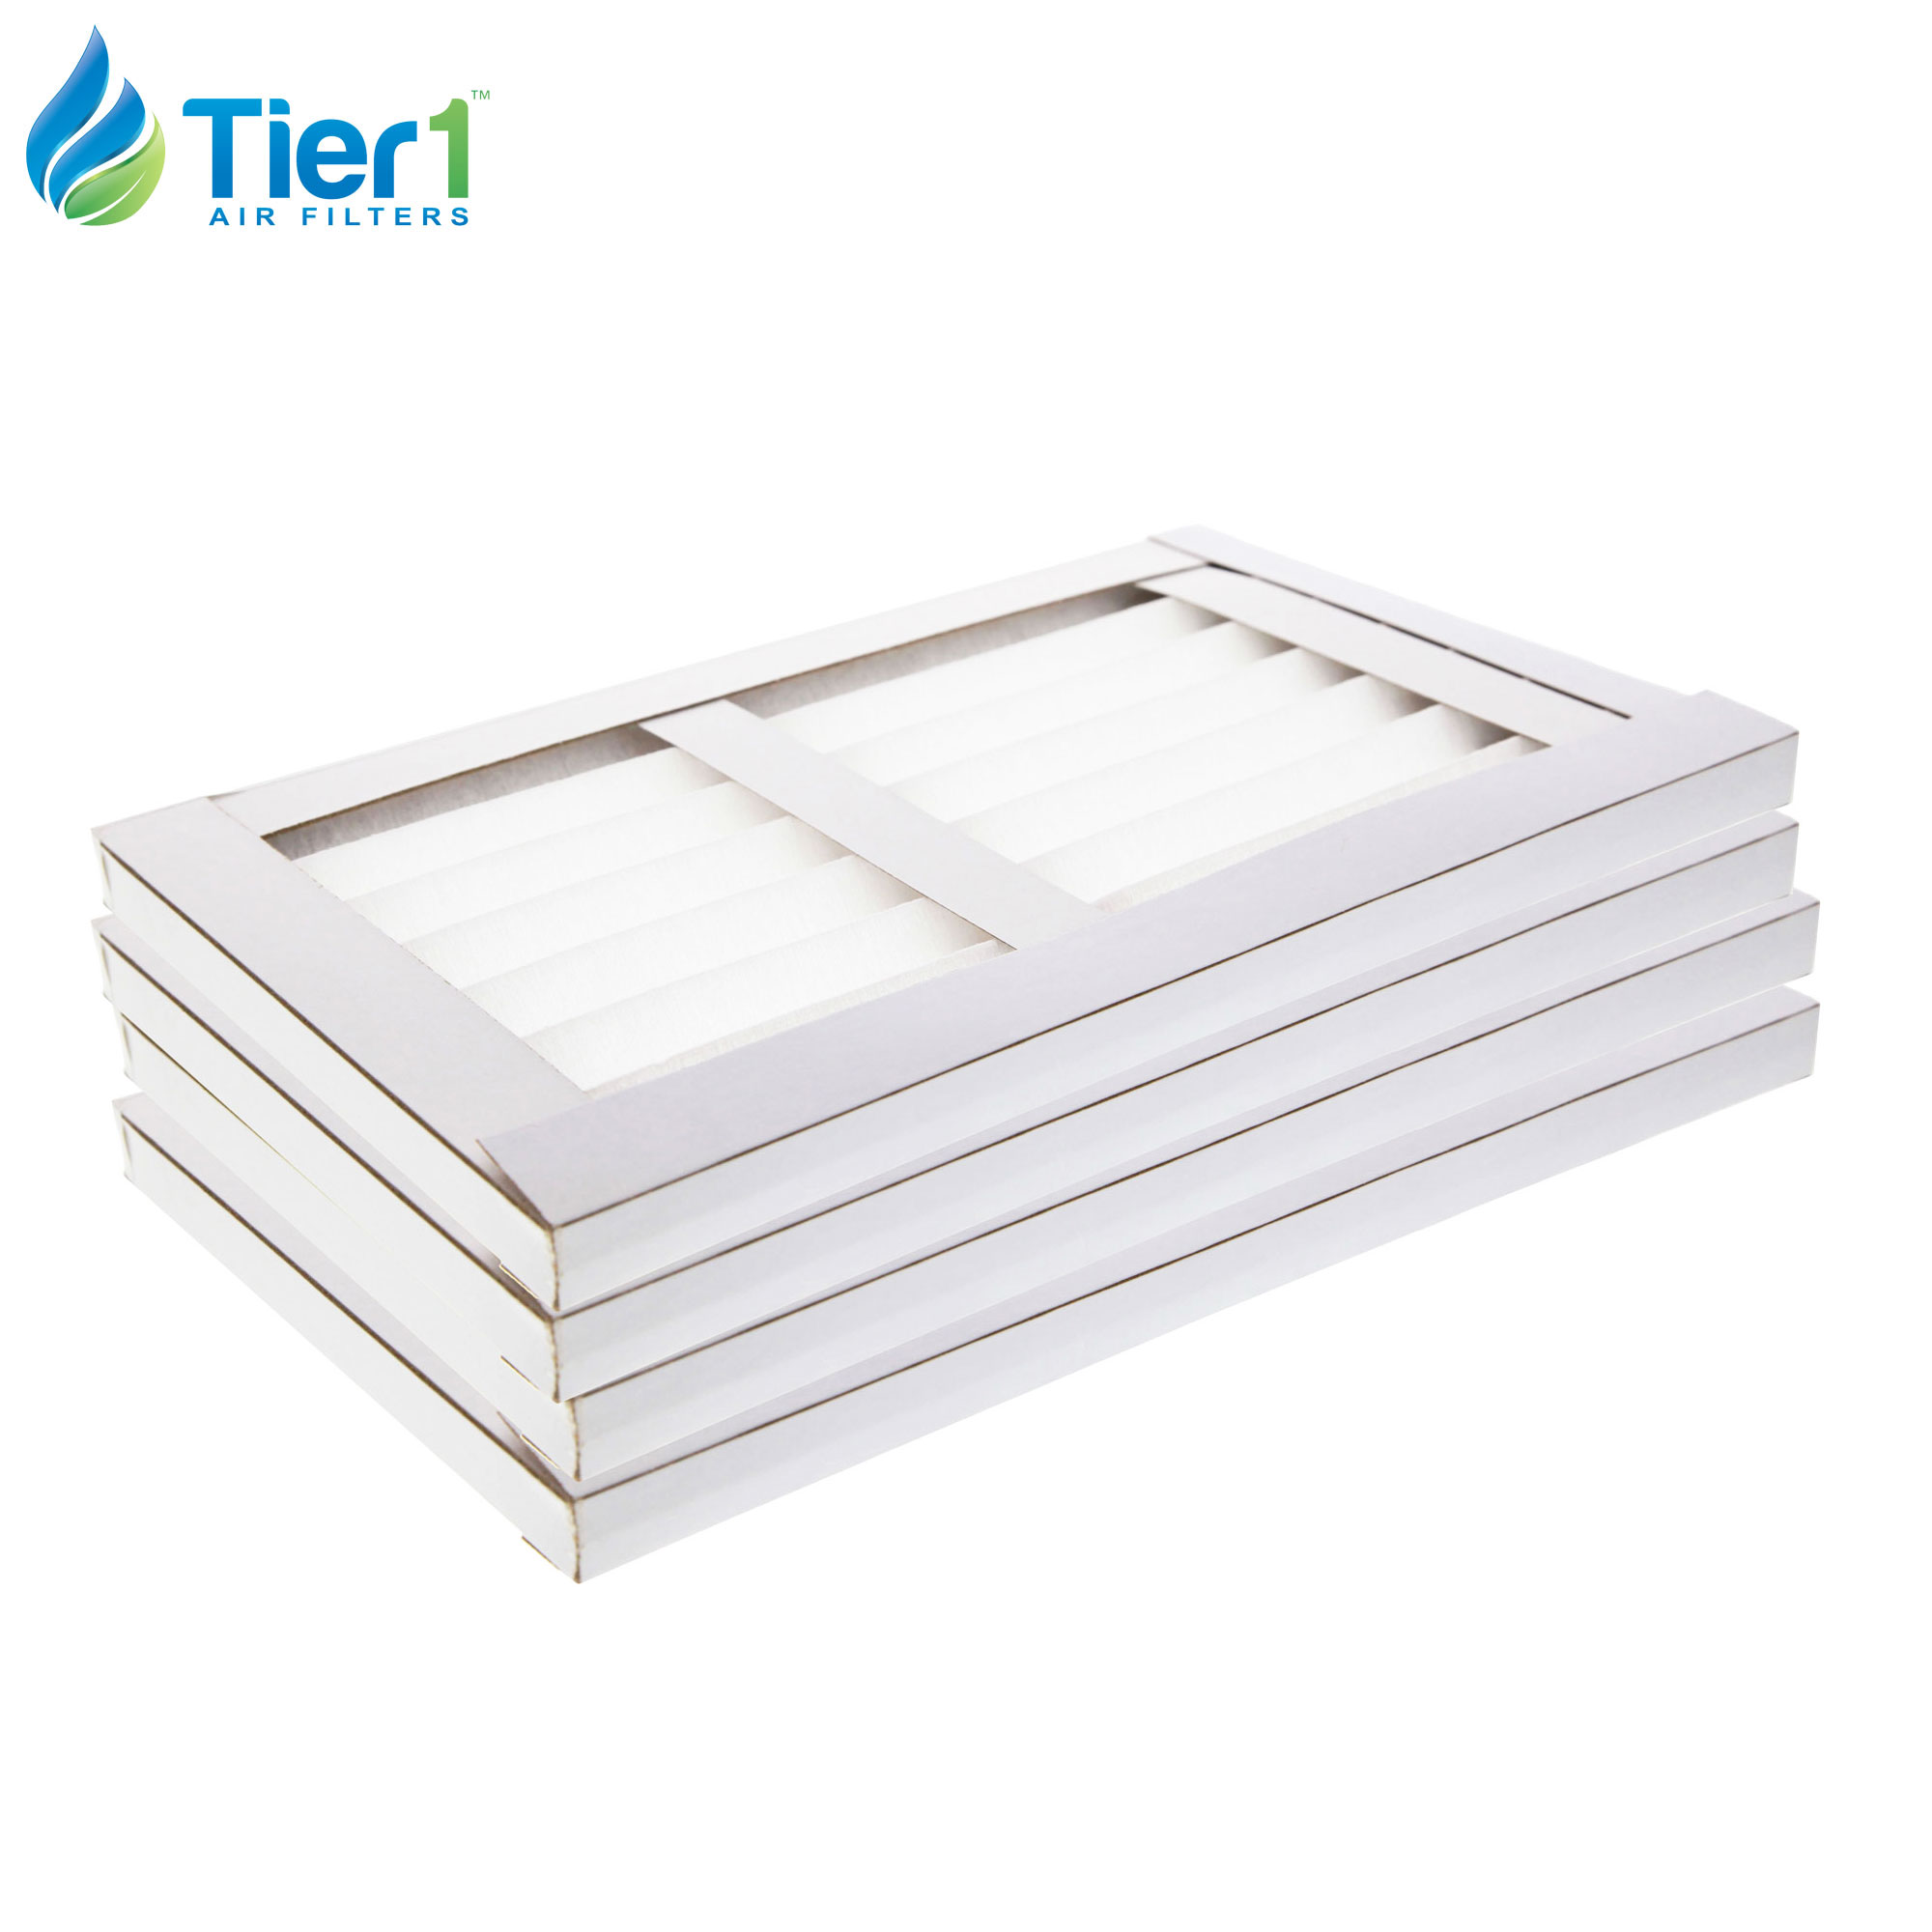 FAPF04 Air Purifier Replacement Filter - 13x9x1 by Tier1 (4-Pack) TIER1_RAP_010813_4_PACK